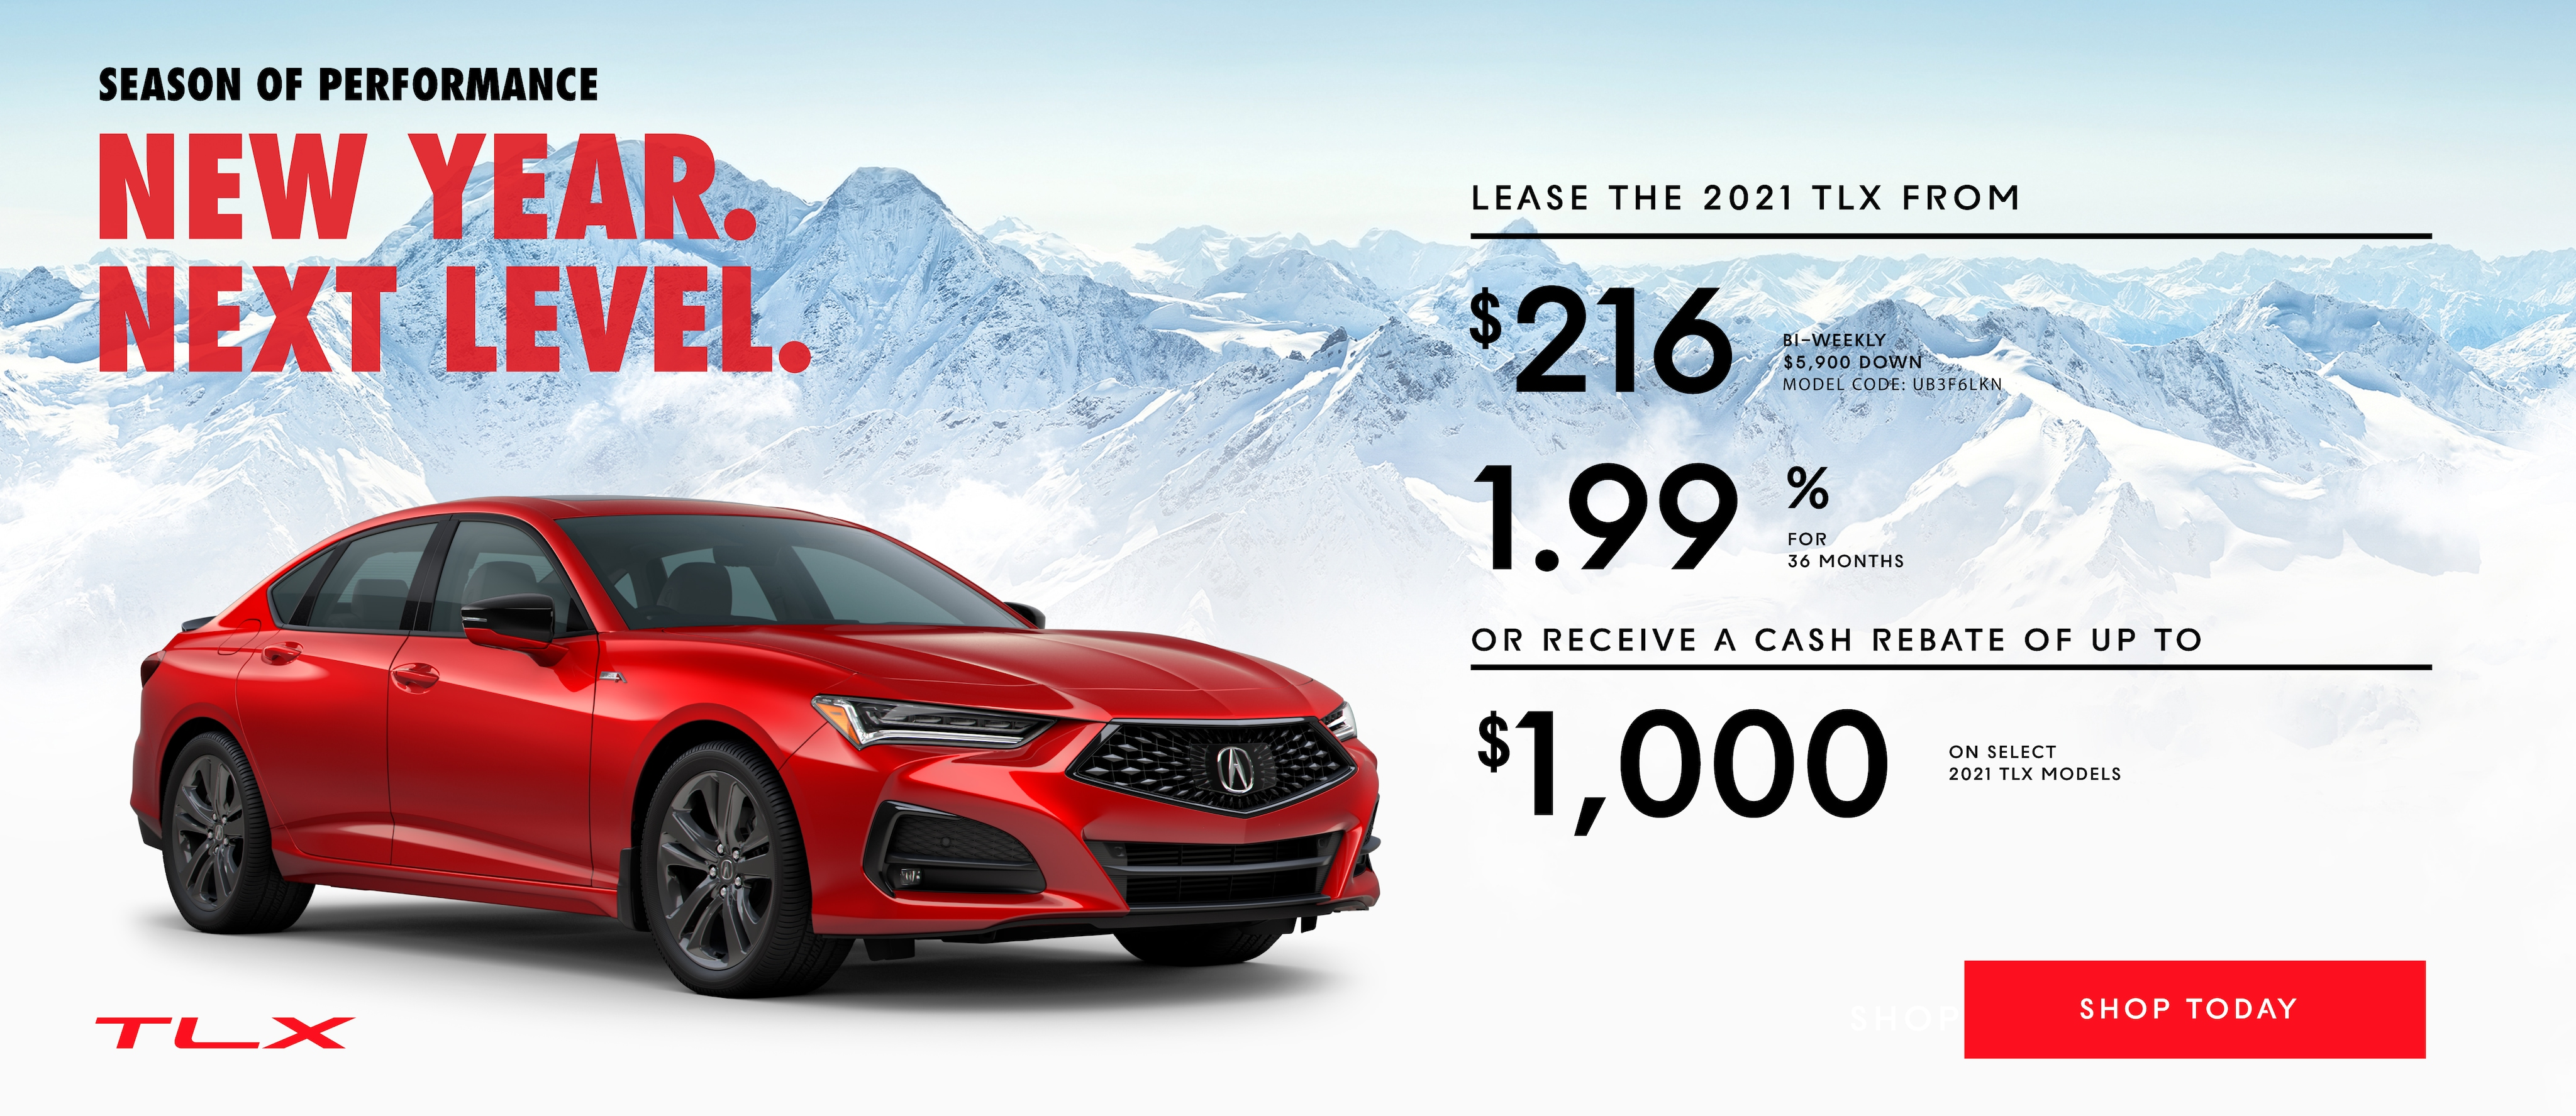 Promotion for leasing the 2020 Acura MDX